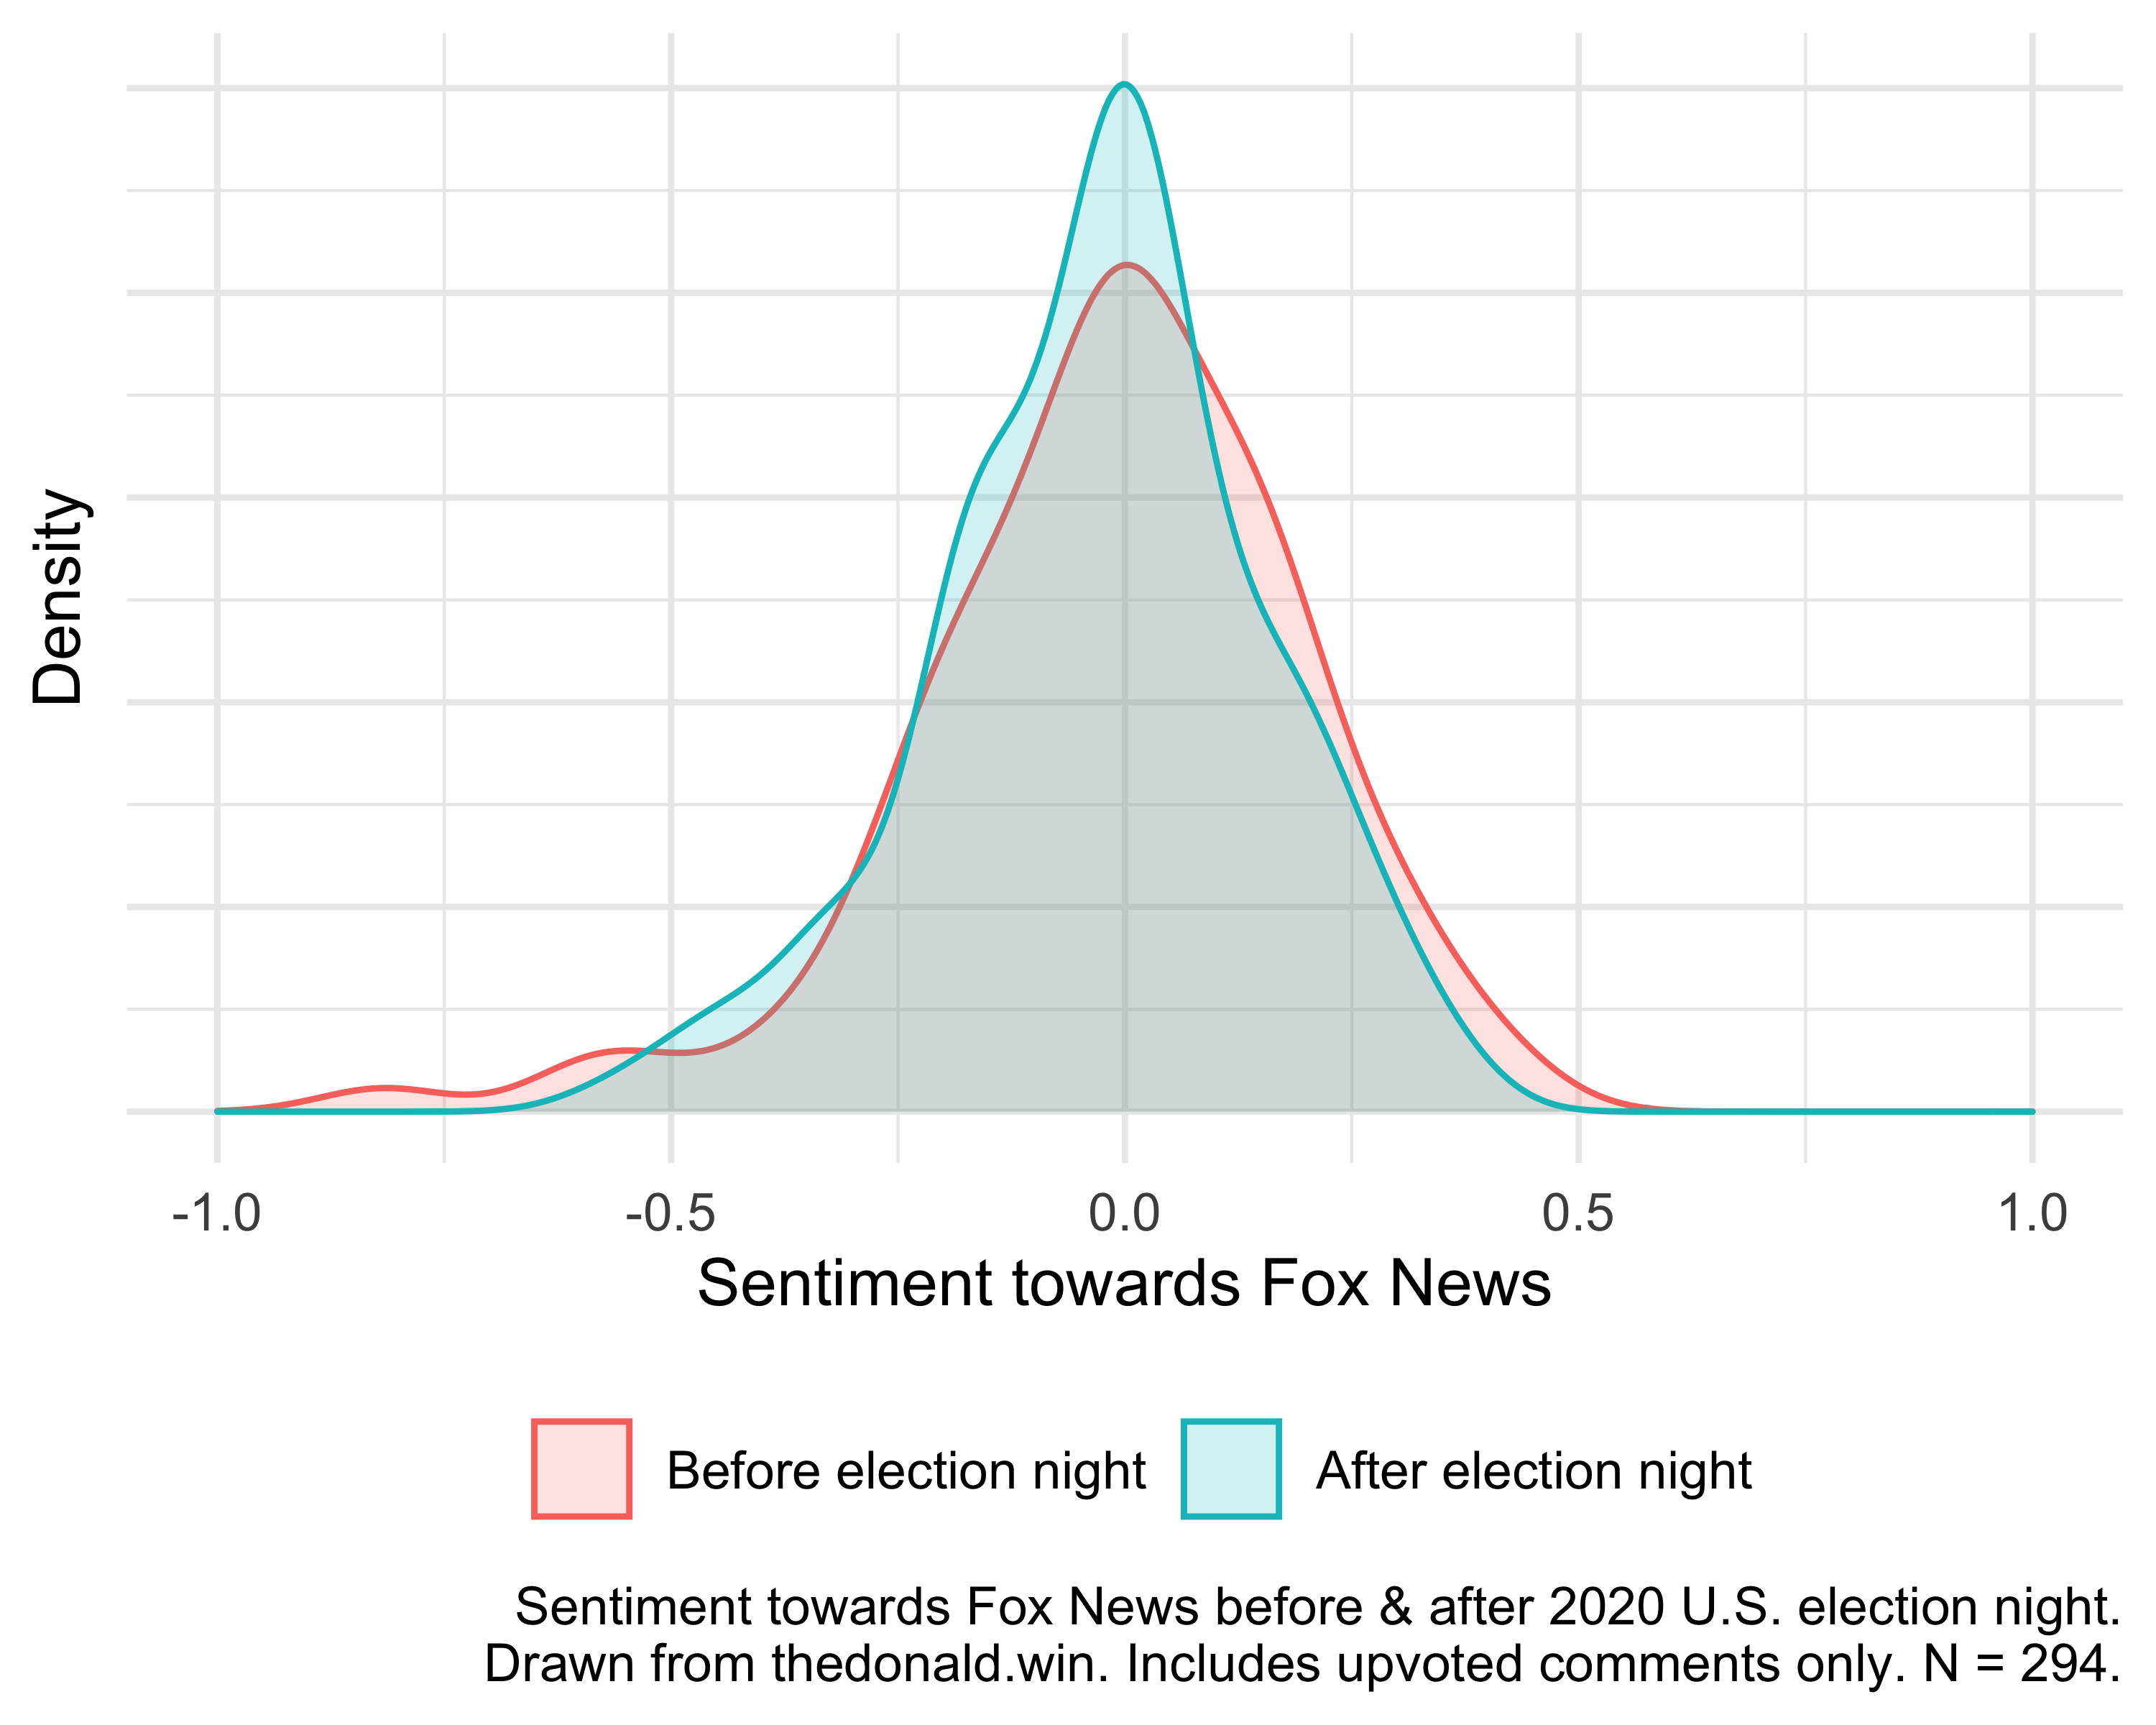 Sentiment towards Fox News before & after 2020 U.S. election night.